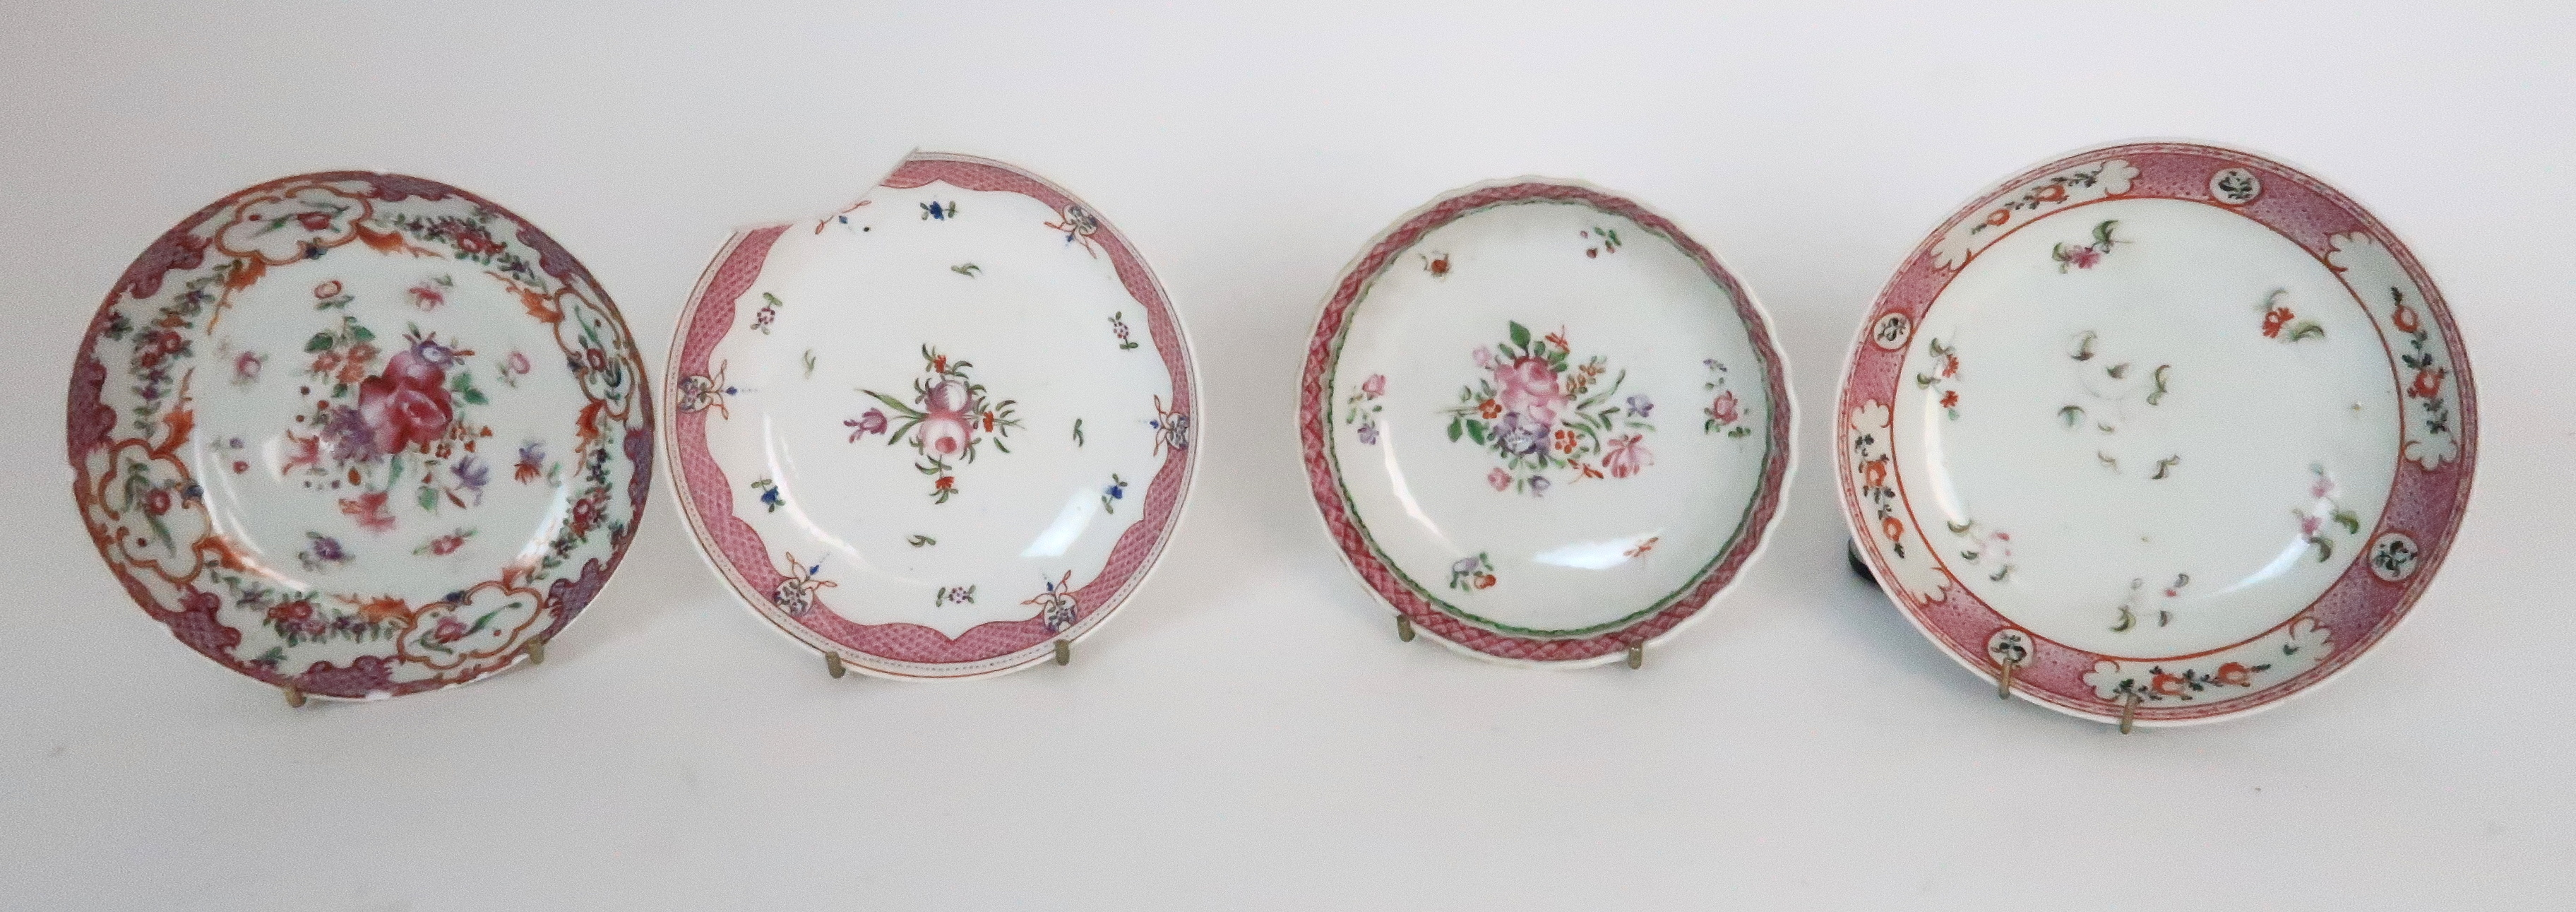 A COLLECTION OF TEA BOWLS AND SAUCERS each with pink scale and floral decoration including New Hall; - Image 3 of 12